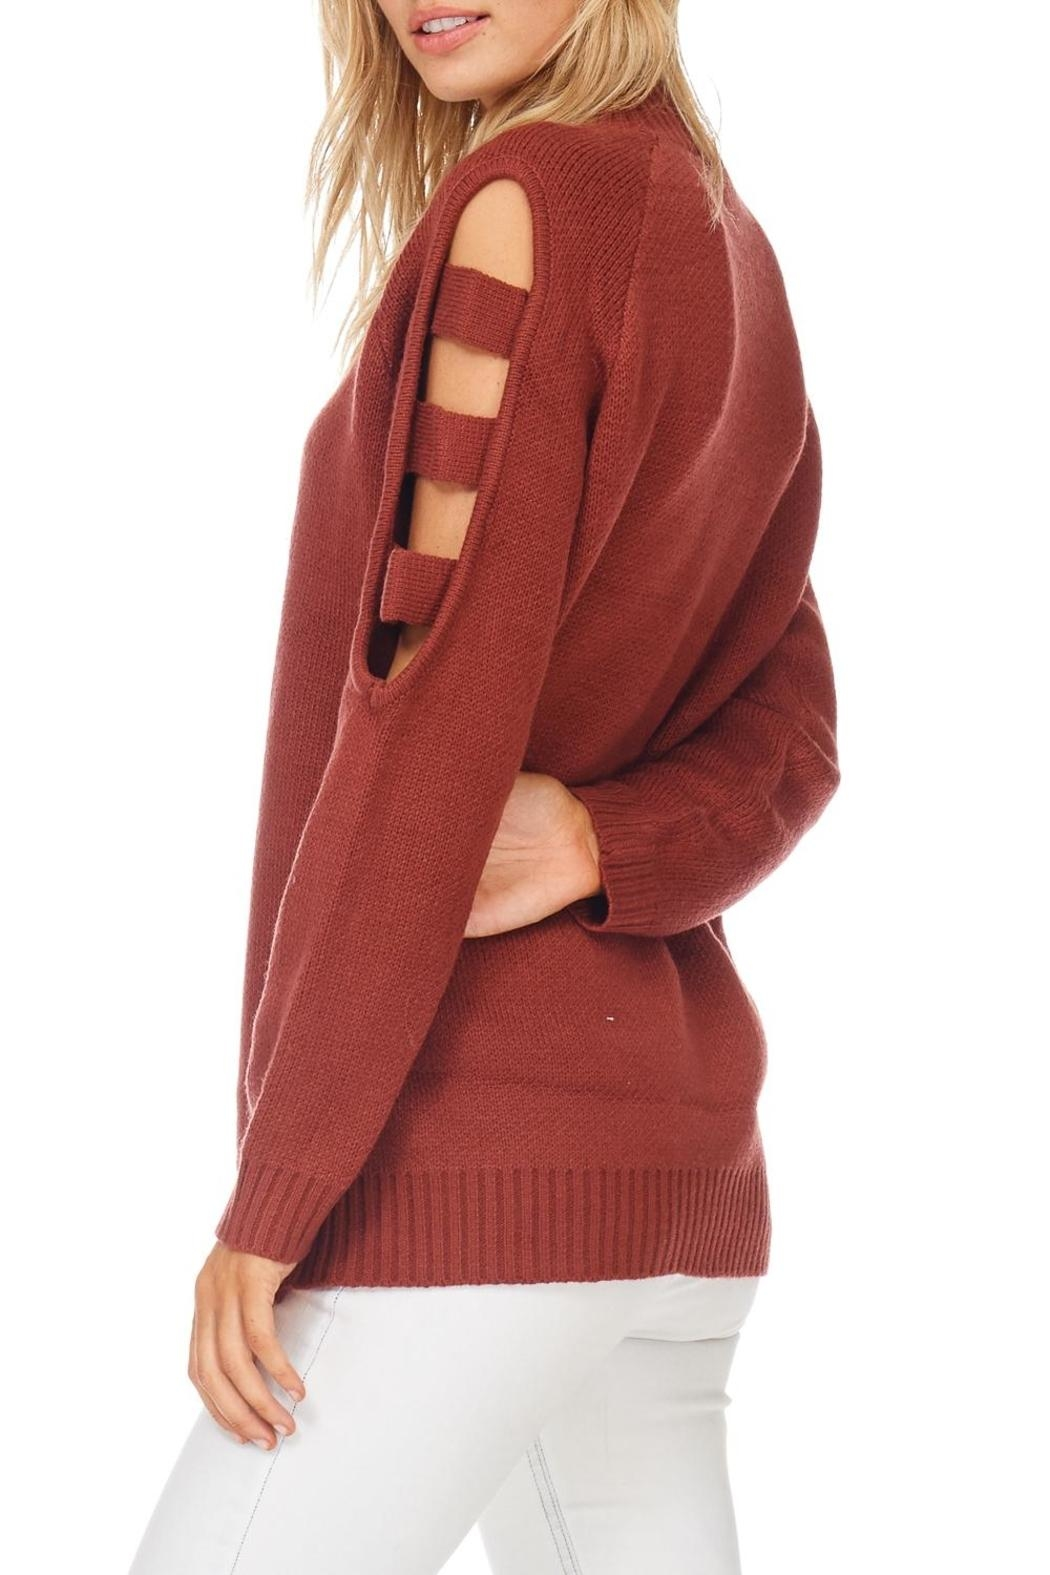 LoveRiche Brick Ladder Sleeve Sweater - Side Cropped Image